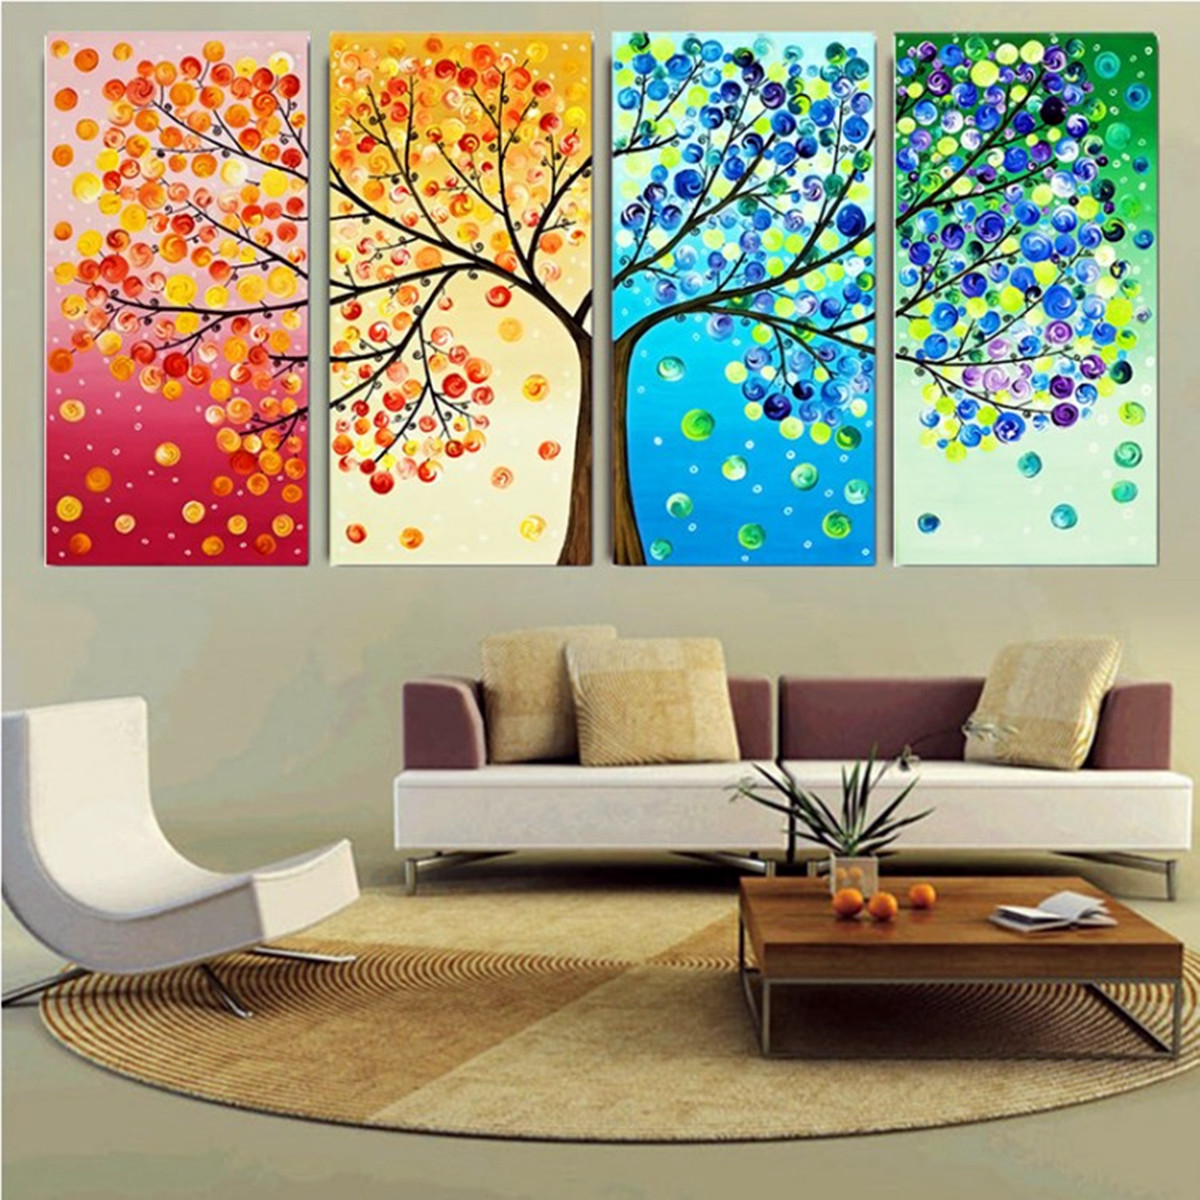 Diy handmade colorful season tree counted cross stitch for Handmade things for decoration